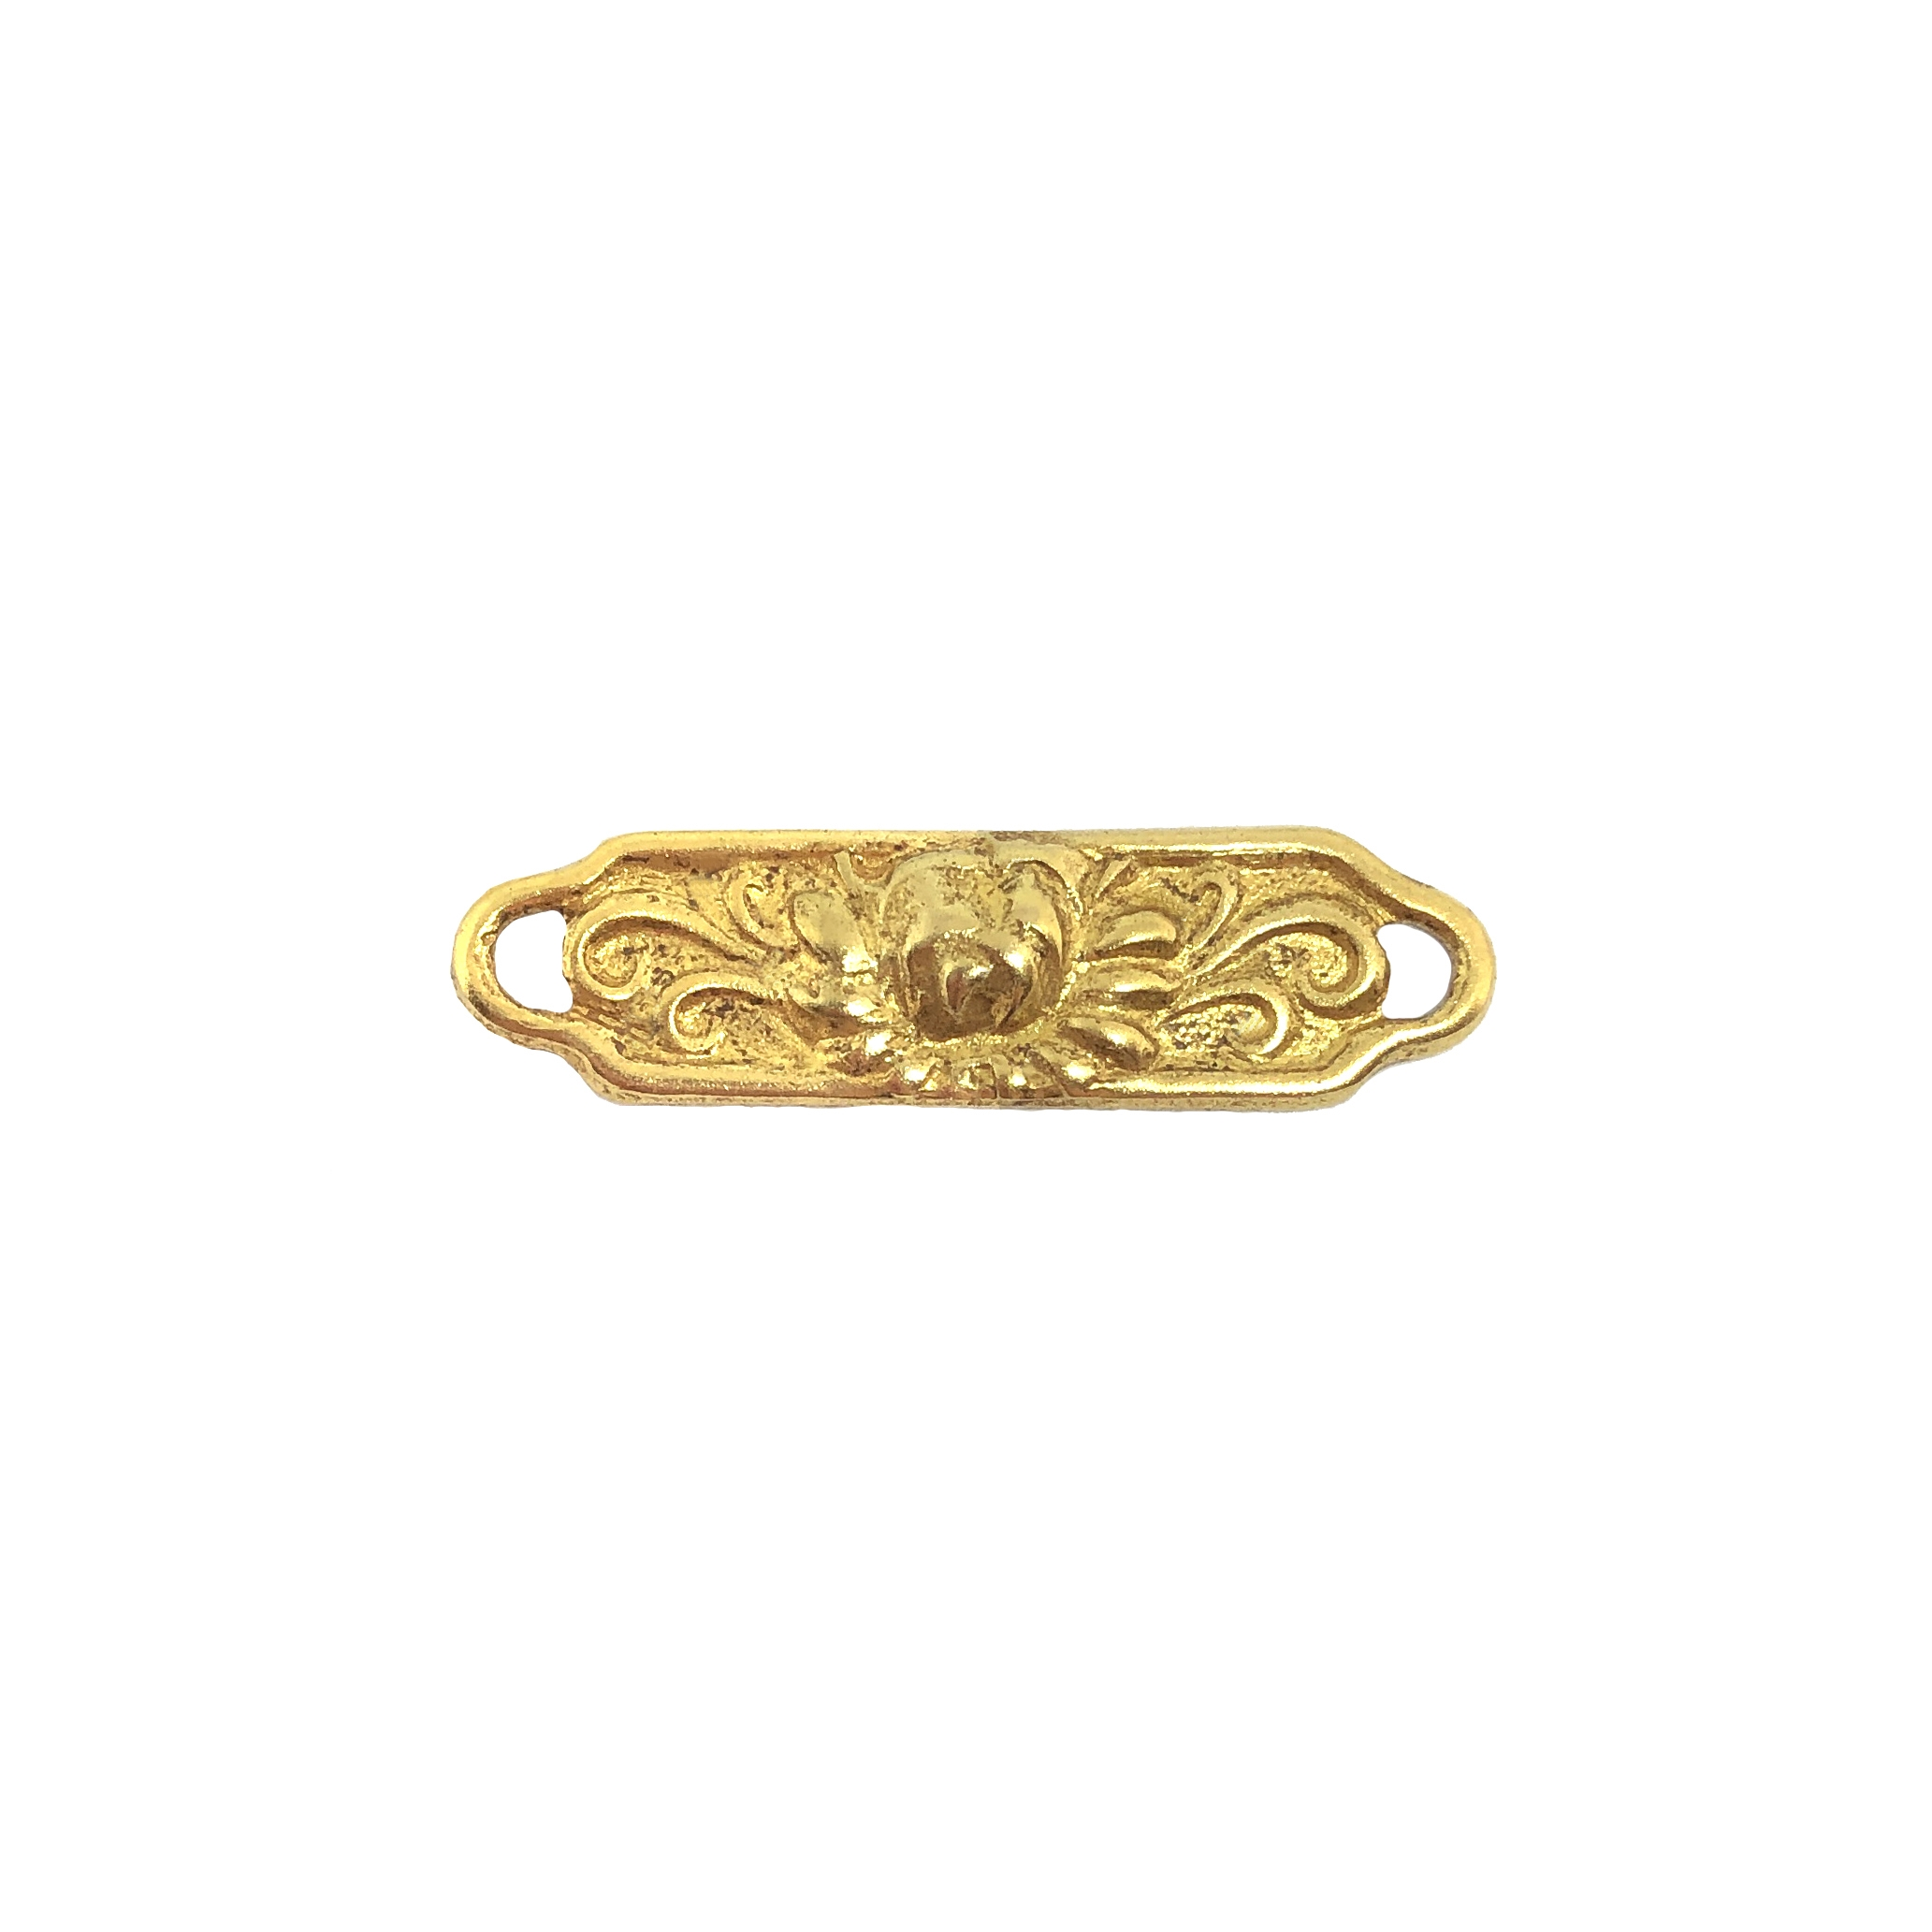 blooming flower connector, classic gold, plated brass, flower, connector, flower connector, blooming flower, jewelry making, jewelry supplies, vintage supplies, jewelry connector, B'sue Boutiques, charm, earrings, chain connectors, jewelry findings, 09745